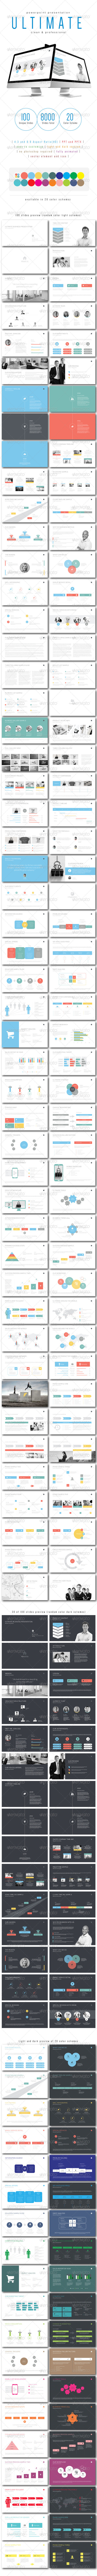 GraphicRiver Multipurpose PowerPoint Presentation Vol 08 8159708